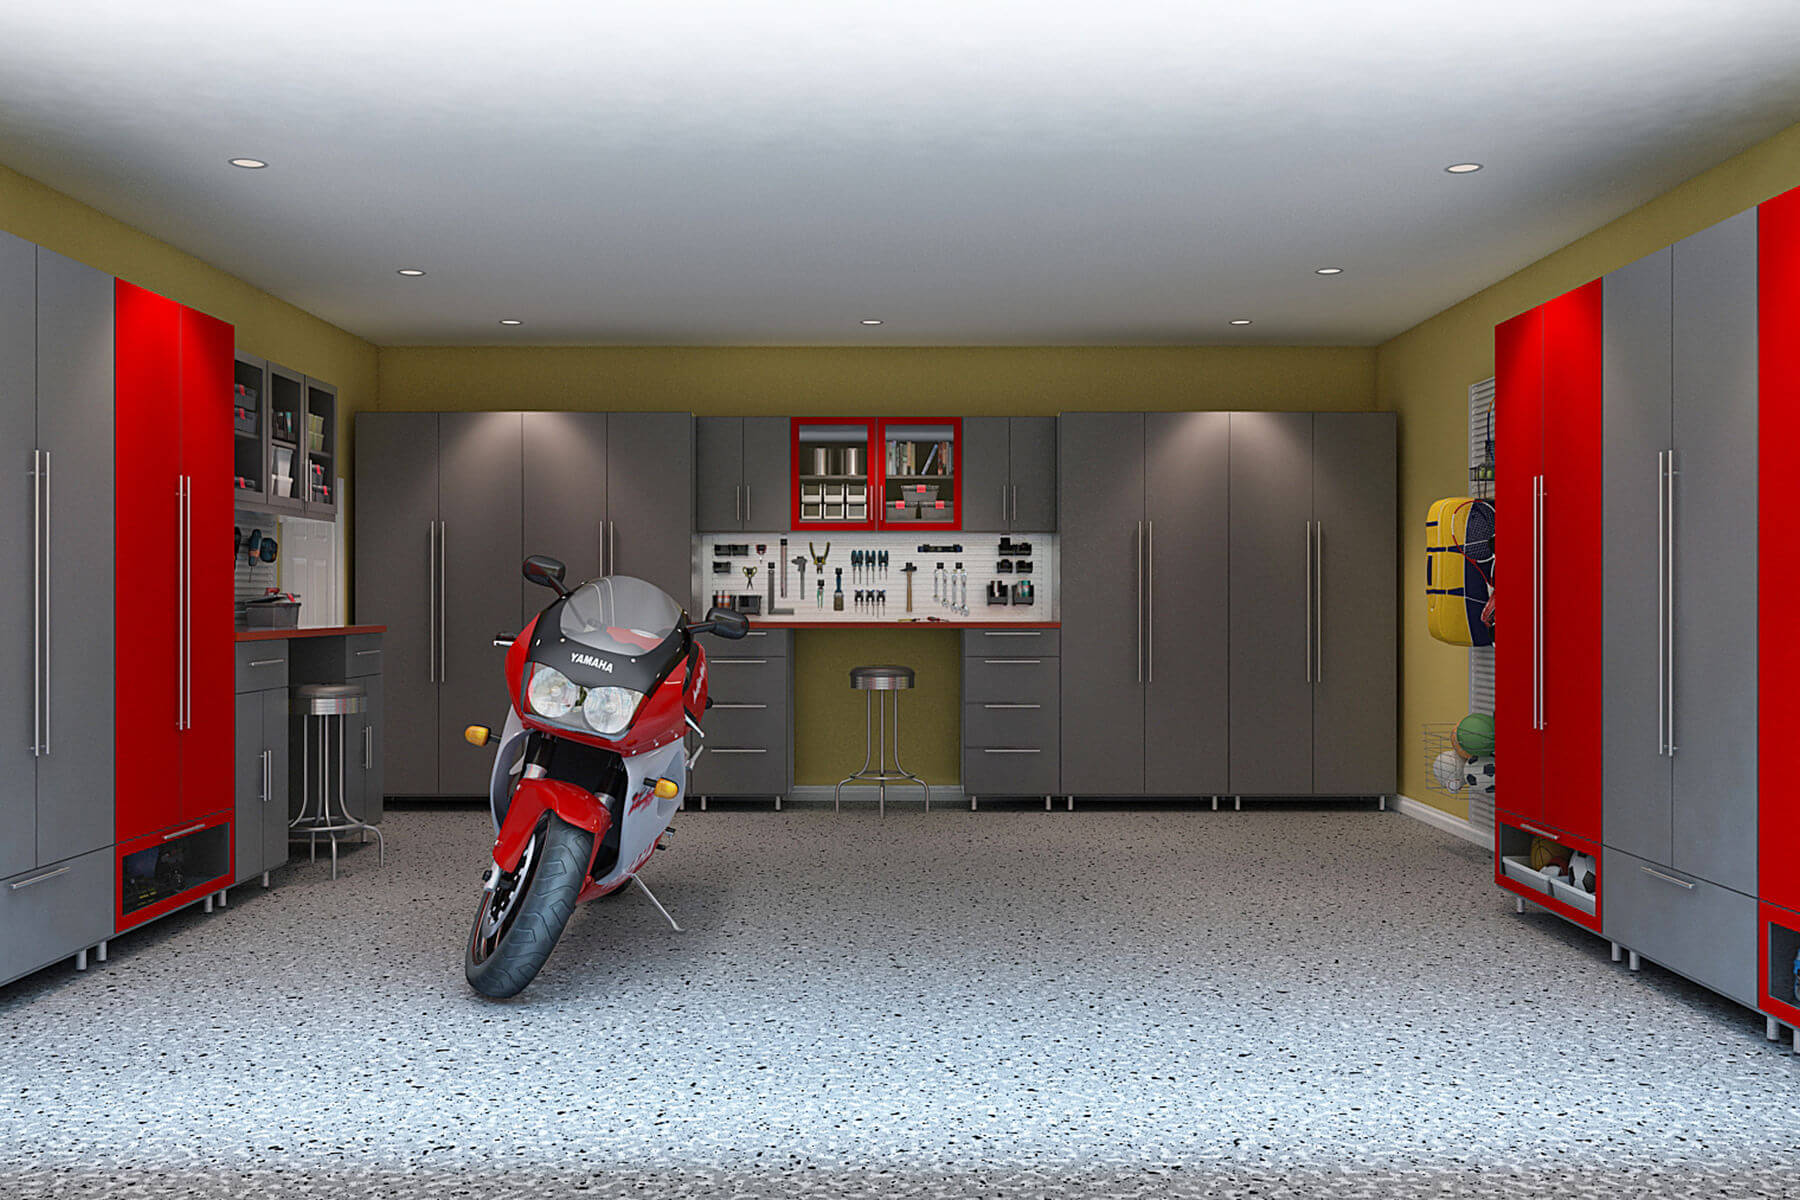 Man Cave Garage Rental : Garage storage ideas plus man caves